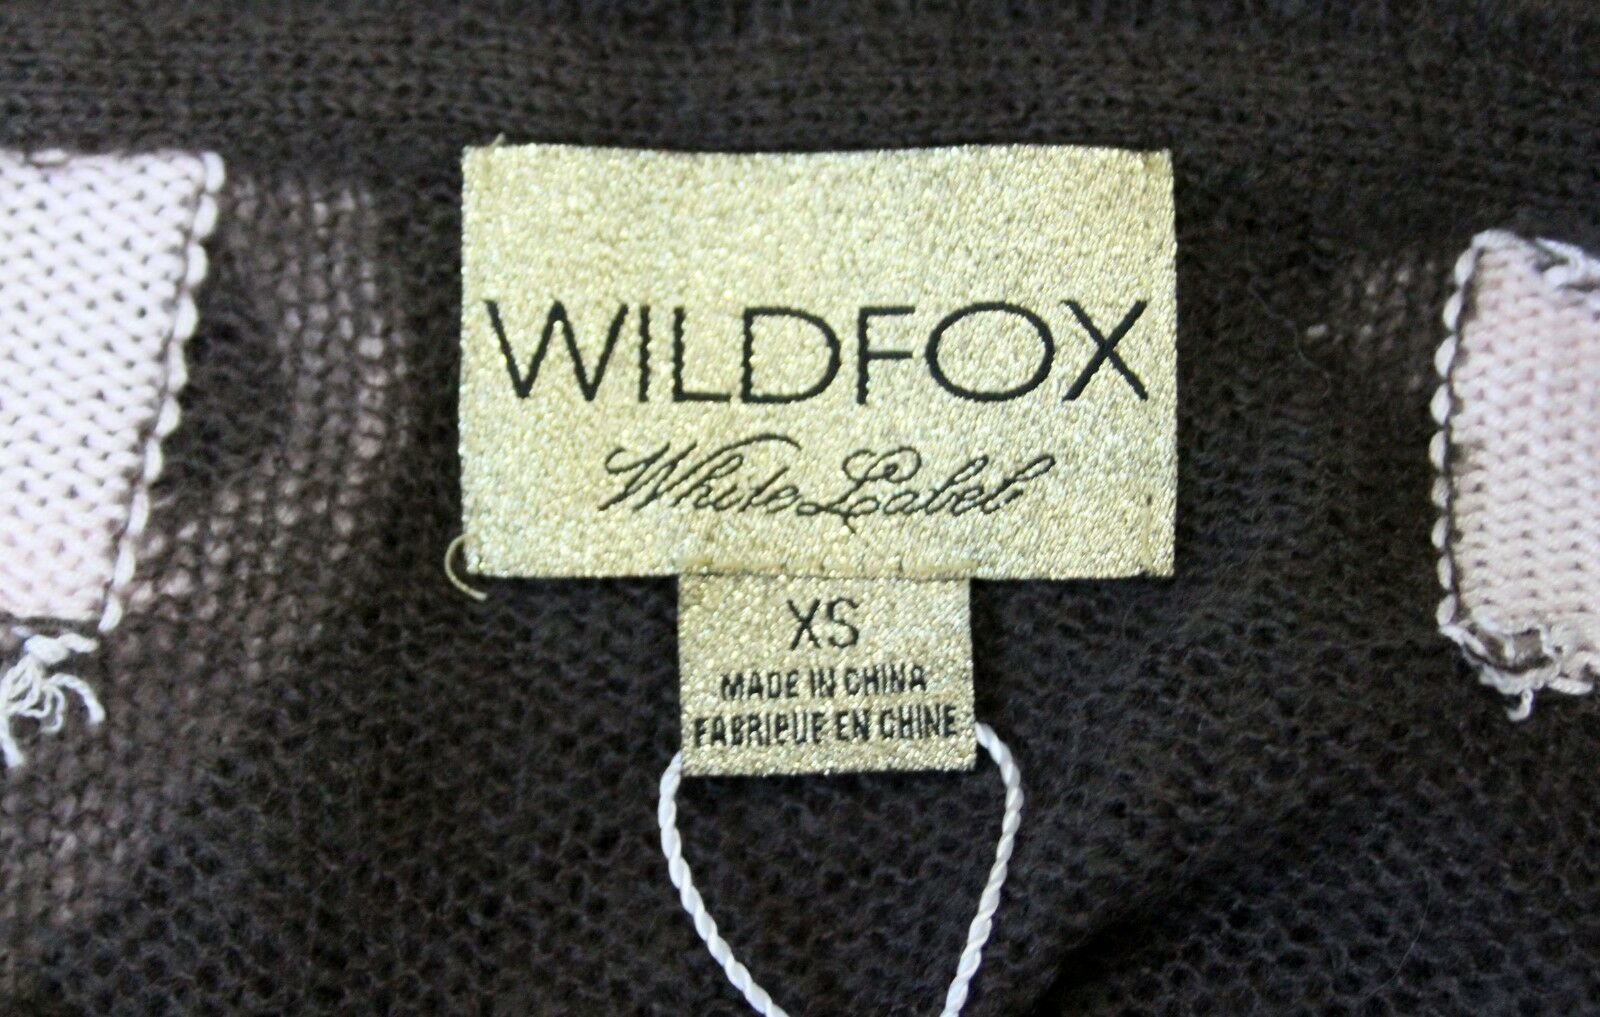 NEW WILDFOX COUTURE JUDGEMENT CROSS KNIT KNIT KNIT SHEER SWEATER JUMPER TUNIC TOP 845f1e